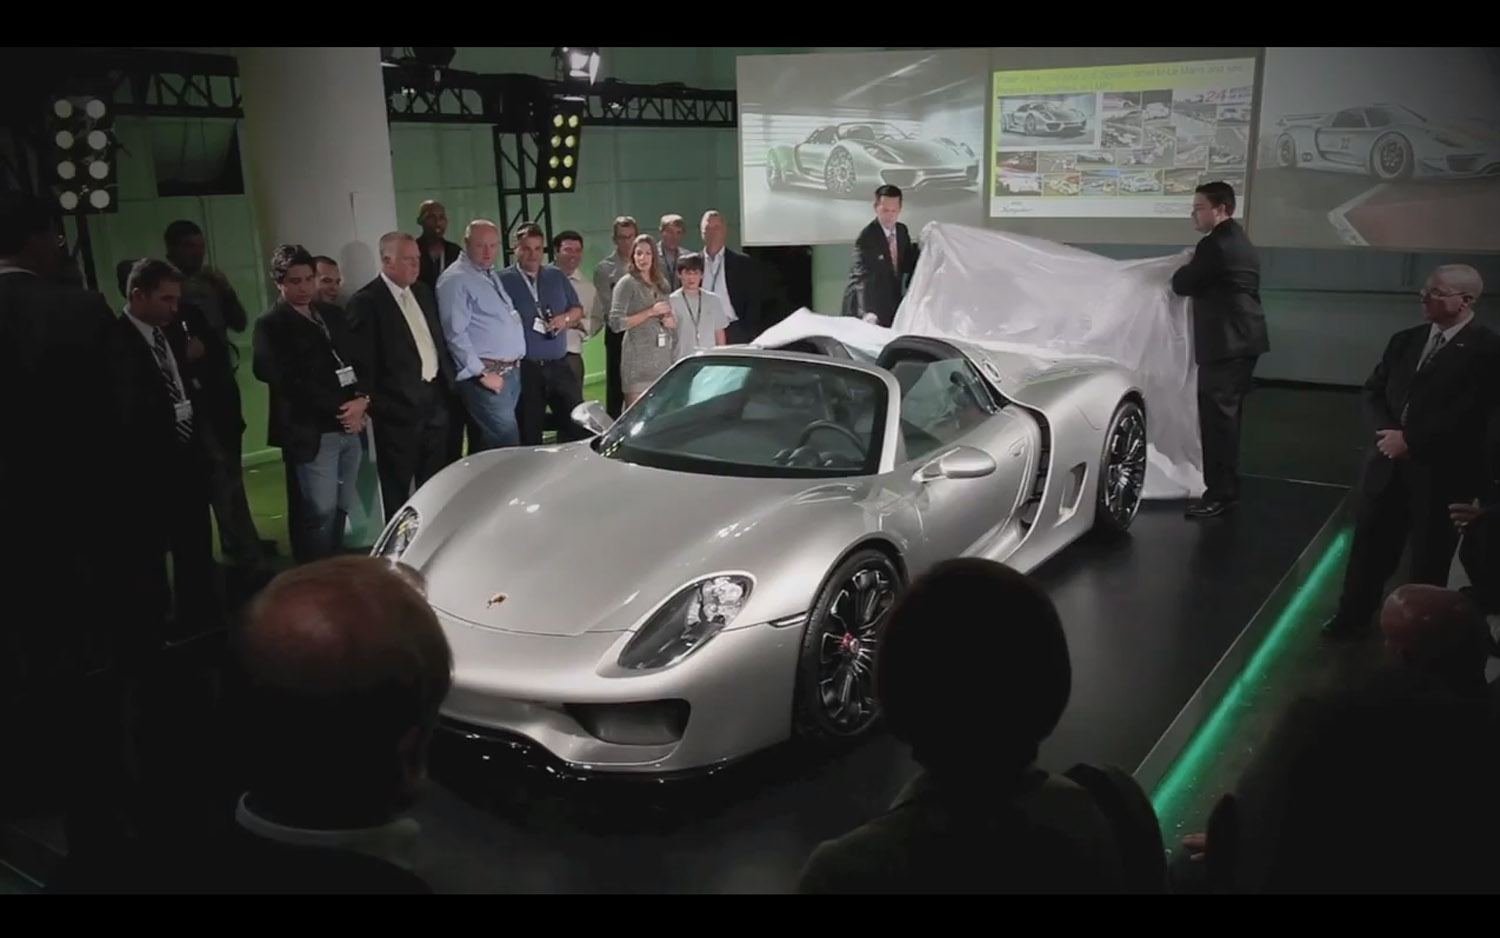 porsche will reportedly build just 918 examples of the hybrid sports car pricing information will be revealed closer to its launch